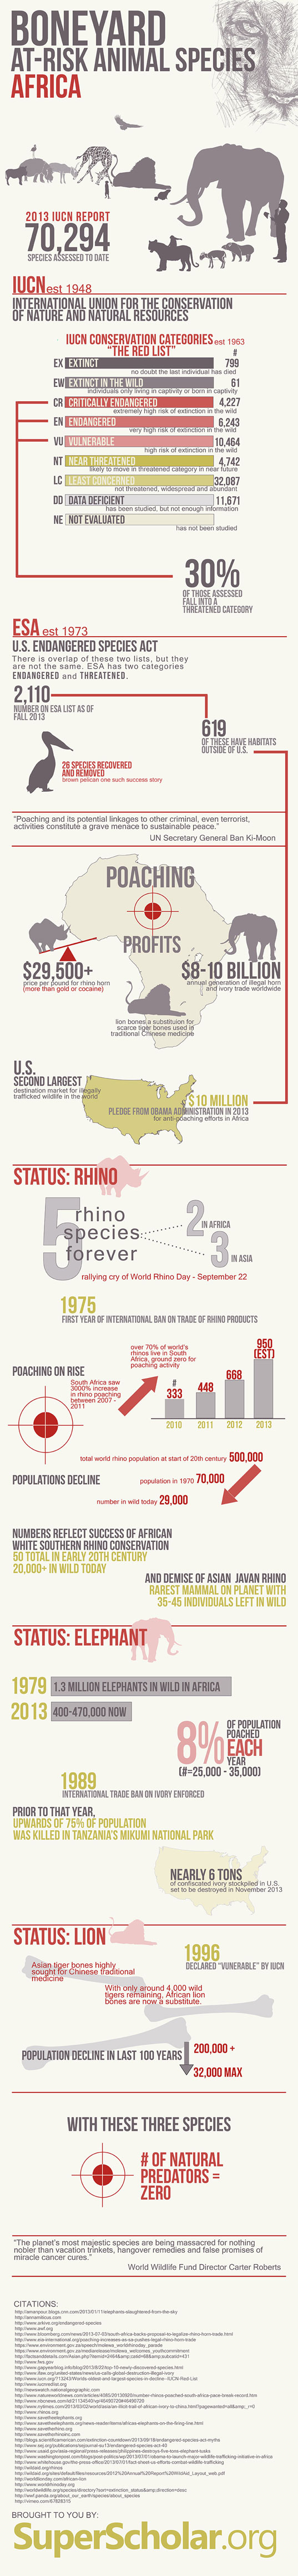 boneyard, africa, infographic, endangered animals, at risk animals, conservation, environment, iucn, biodiversity, international union for the conservation of nature and natural resources, threatened species, vulnerable species